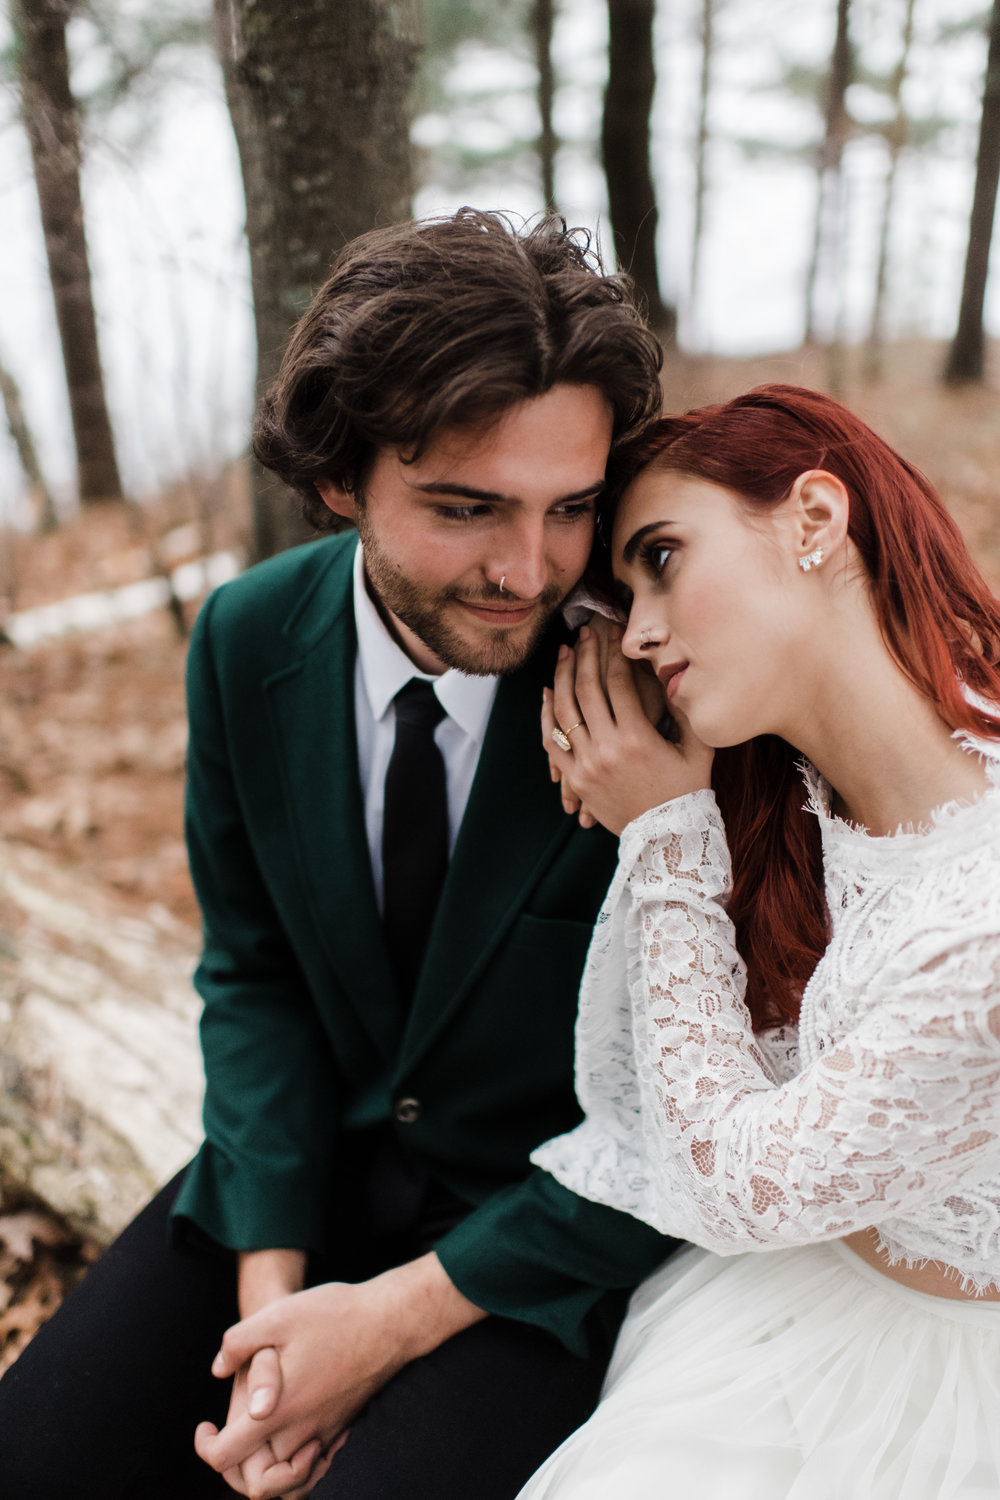 Bride in lace and beaded crop top rests hands on groom's shoulder and stares into his eyes.